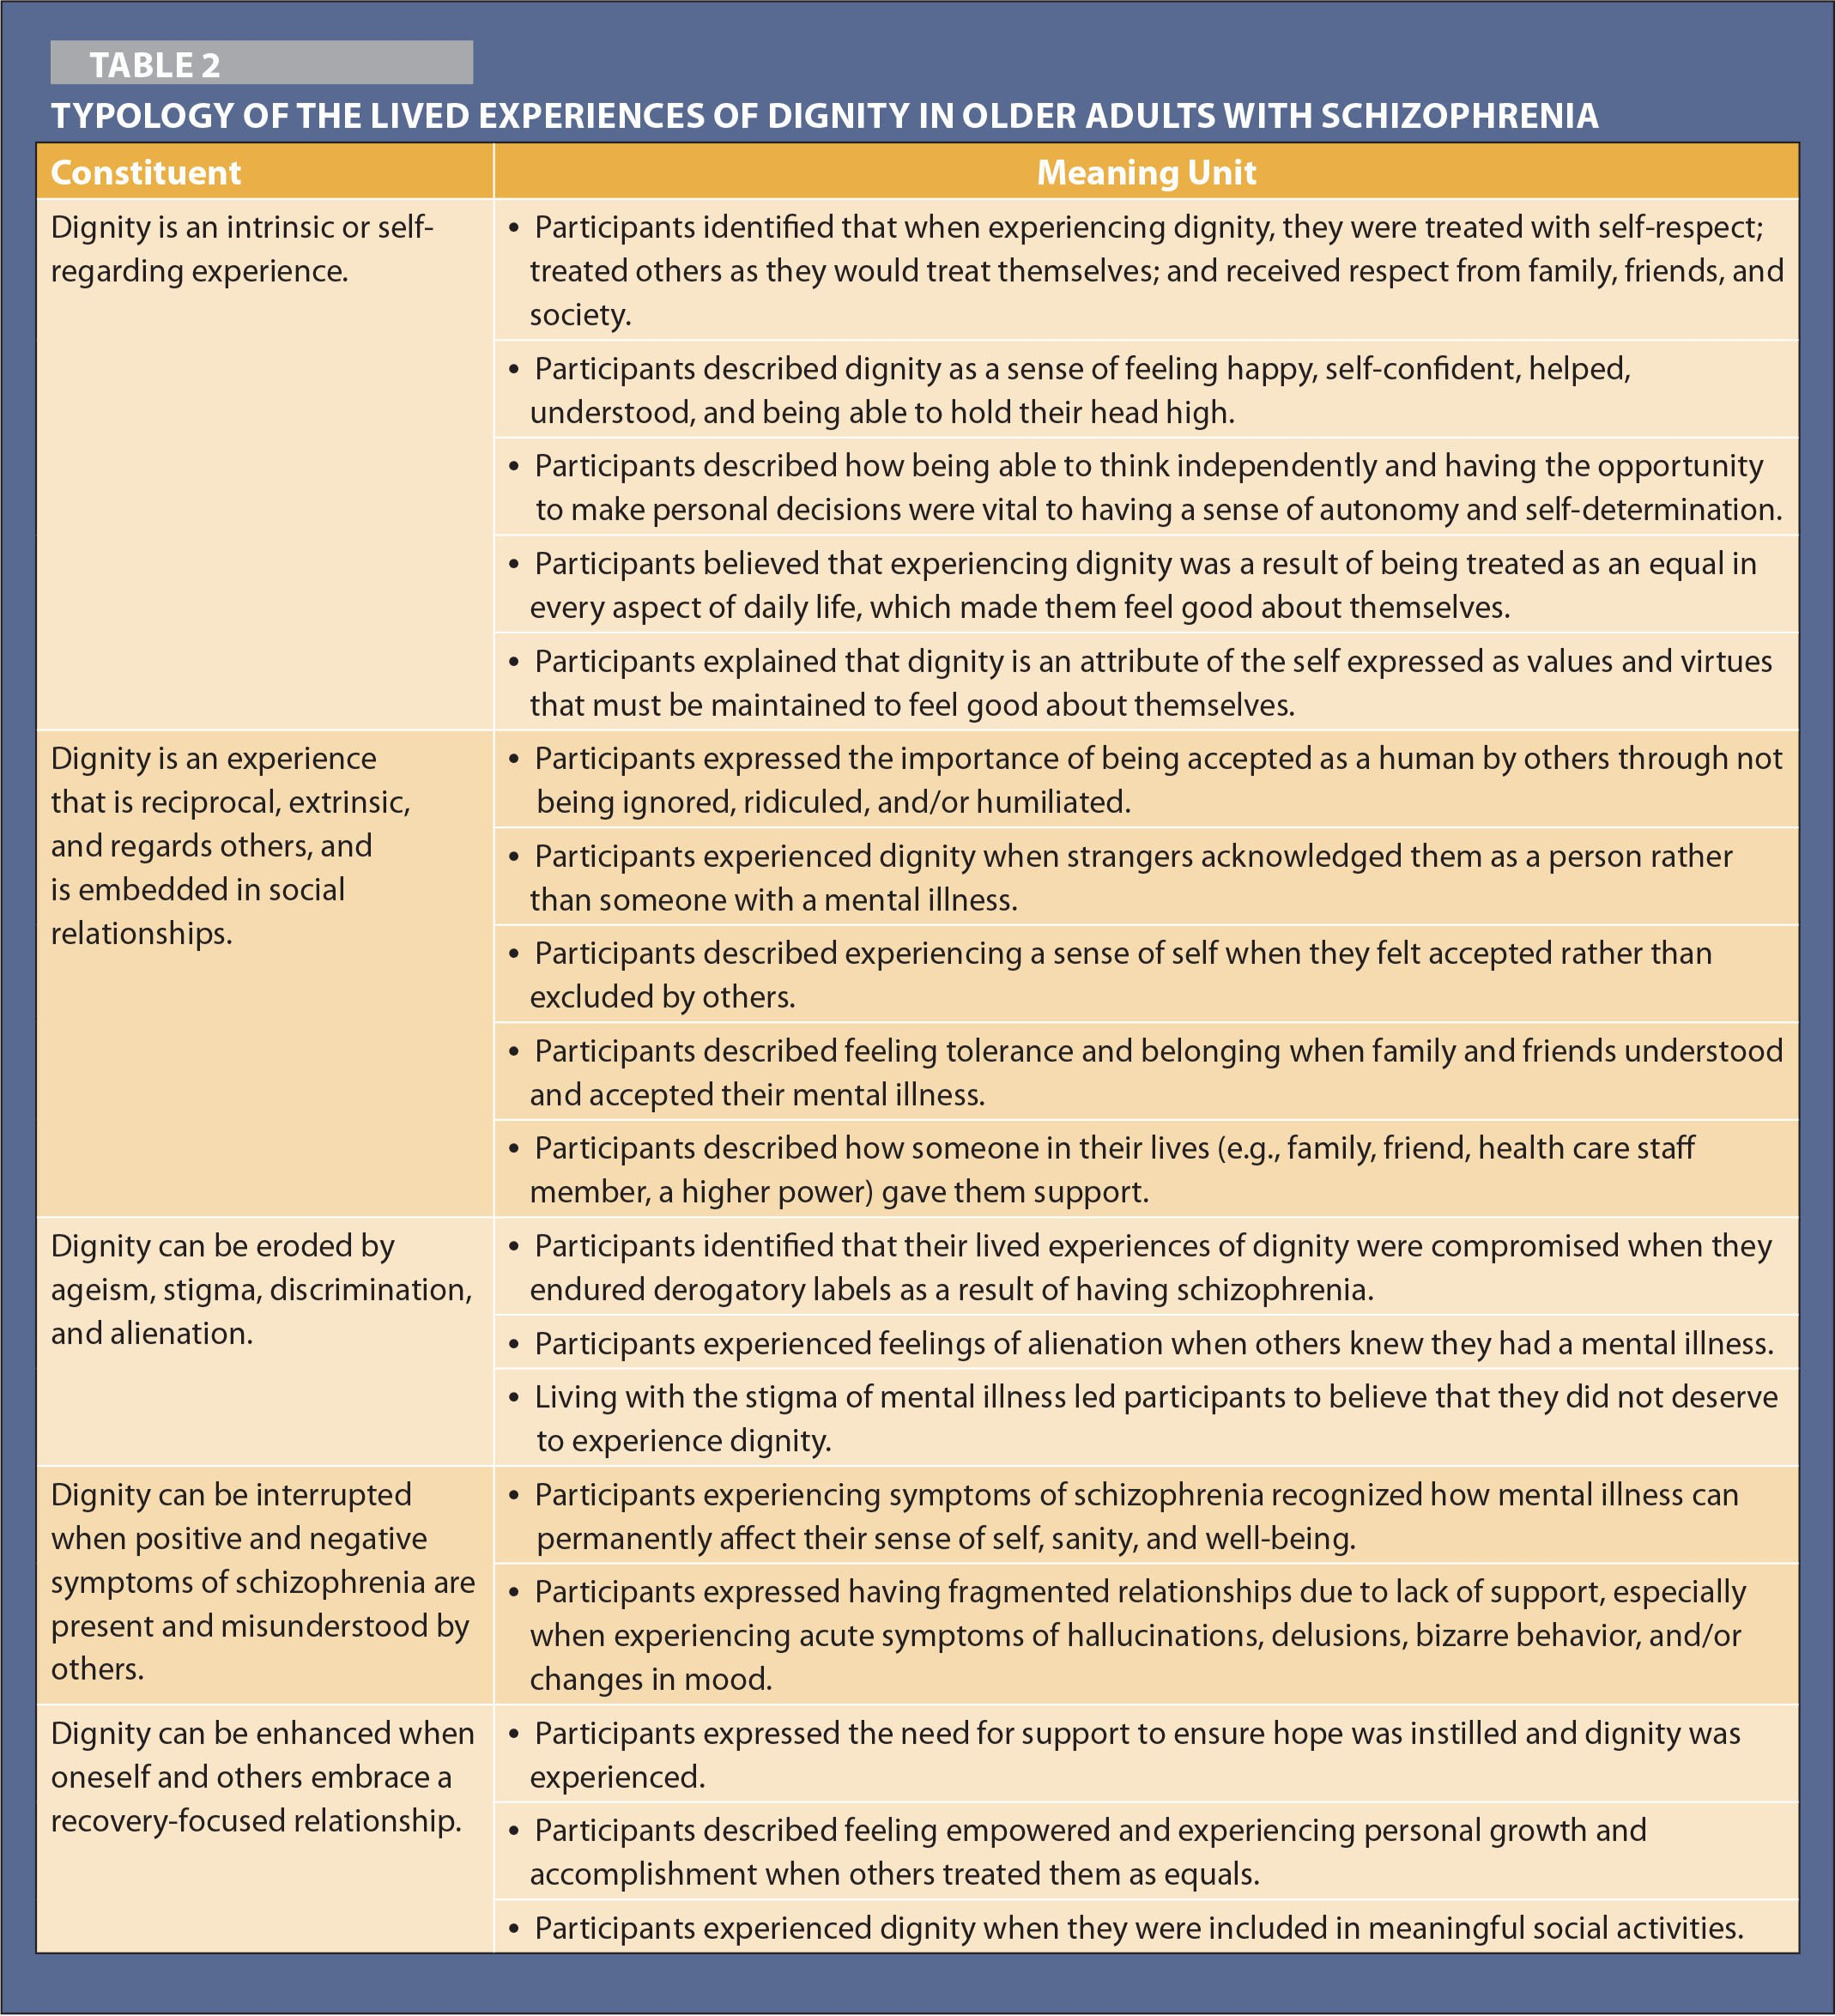 Typology of the Lived Experiences of Dignity in Older Adults with Schizophrenia